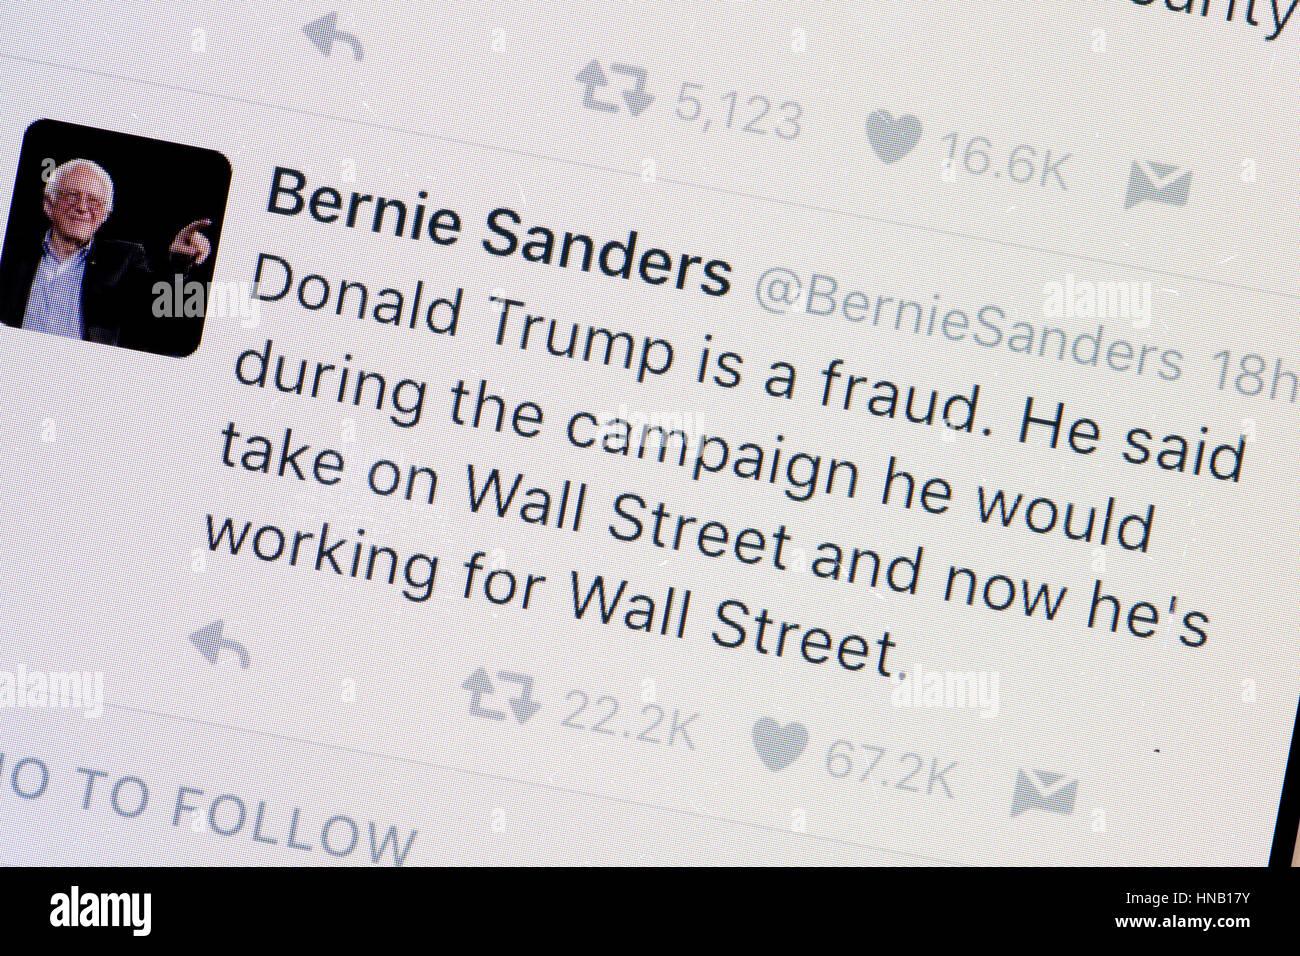 Senator Bernie Sanders Twitter account  on mobile phone screen - USA Stock Photo